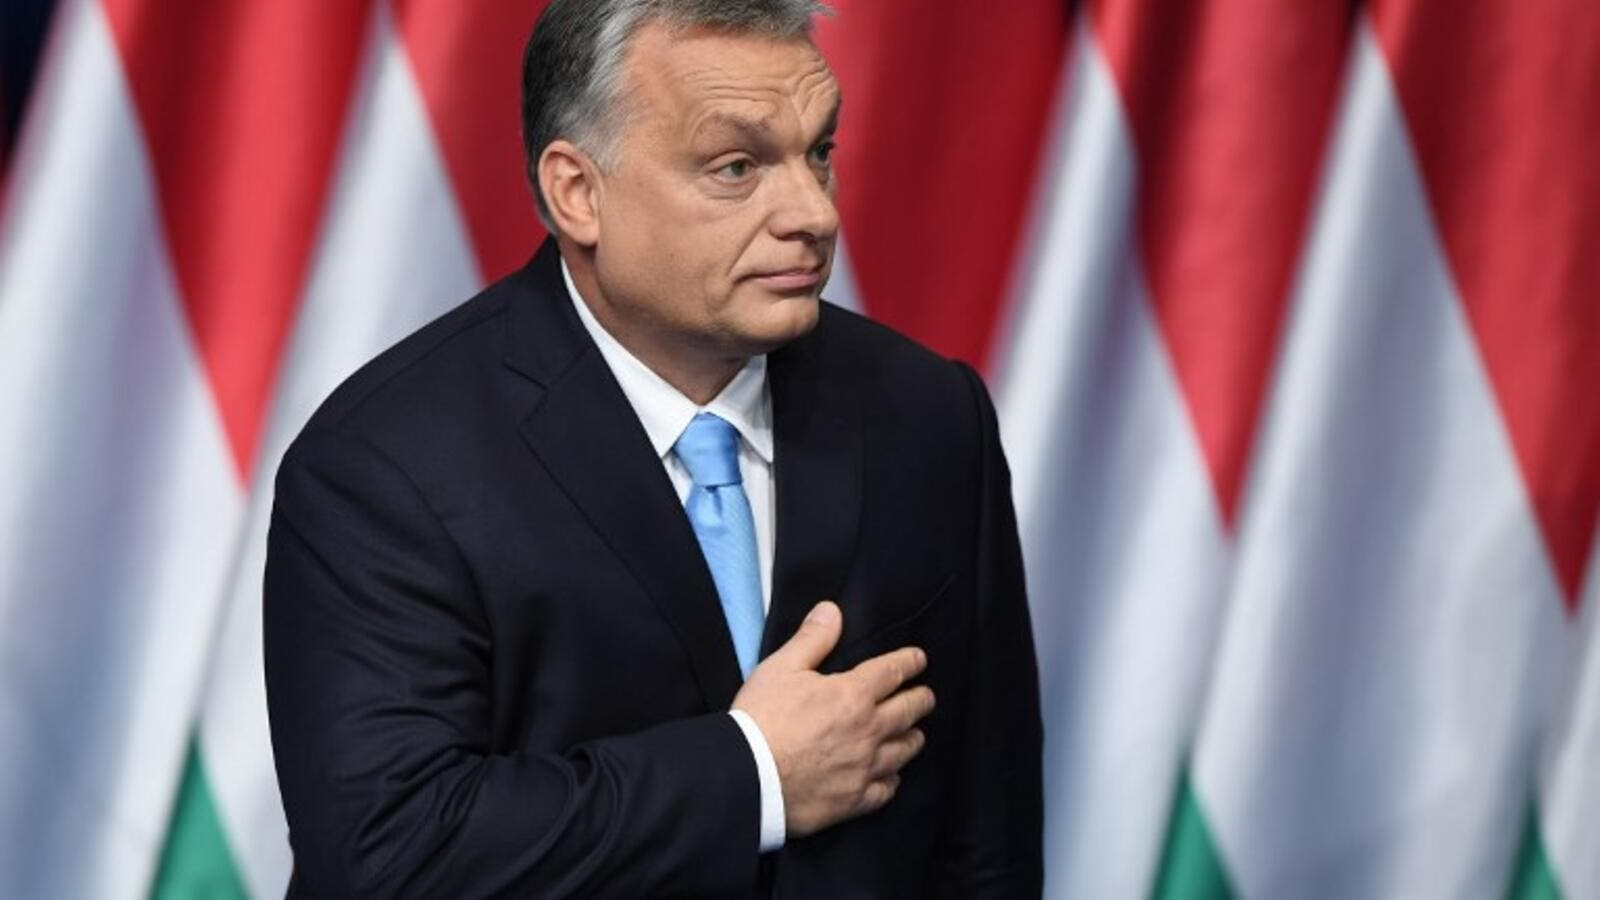 Hungarian Prime Minister and Chairman of FIDESZ party Viktor Orban reacts after delivering his state of the nation speech in front of his party members and sympathizers at Varkert Bazar cultural center in Budapest. (AFP)